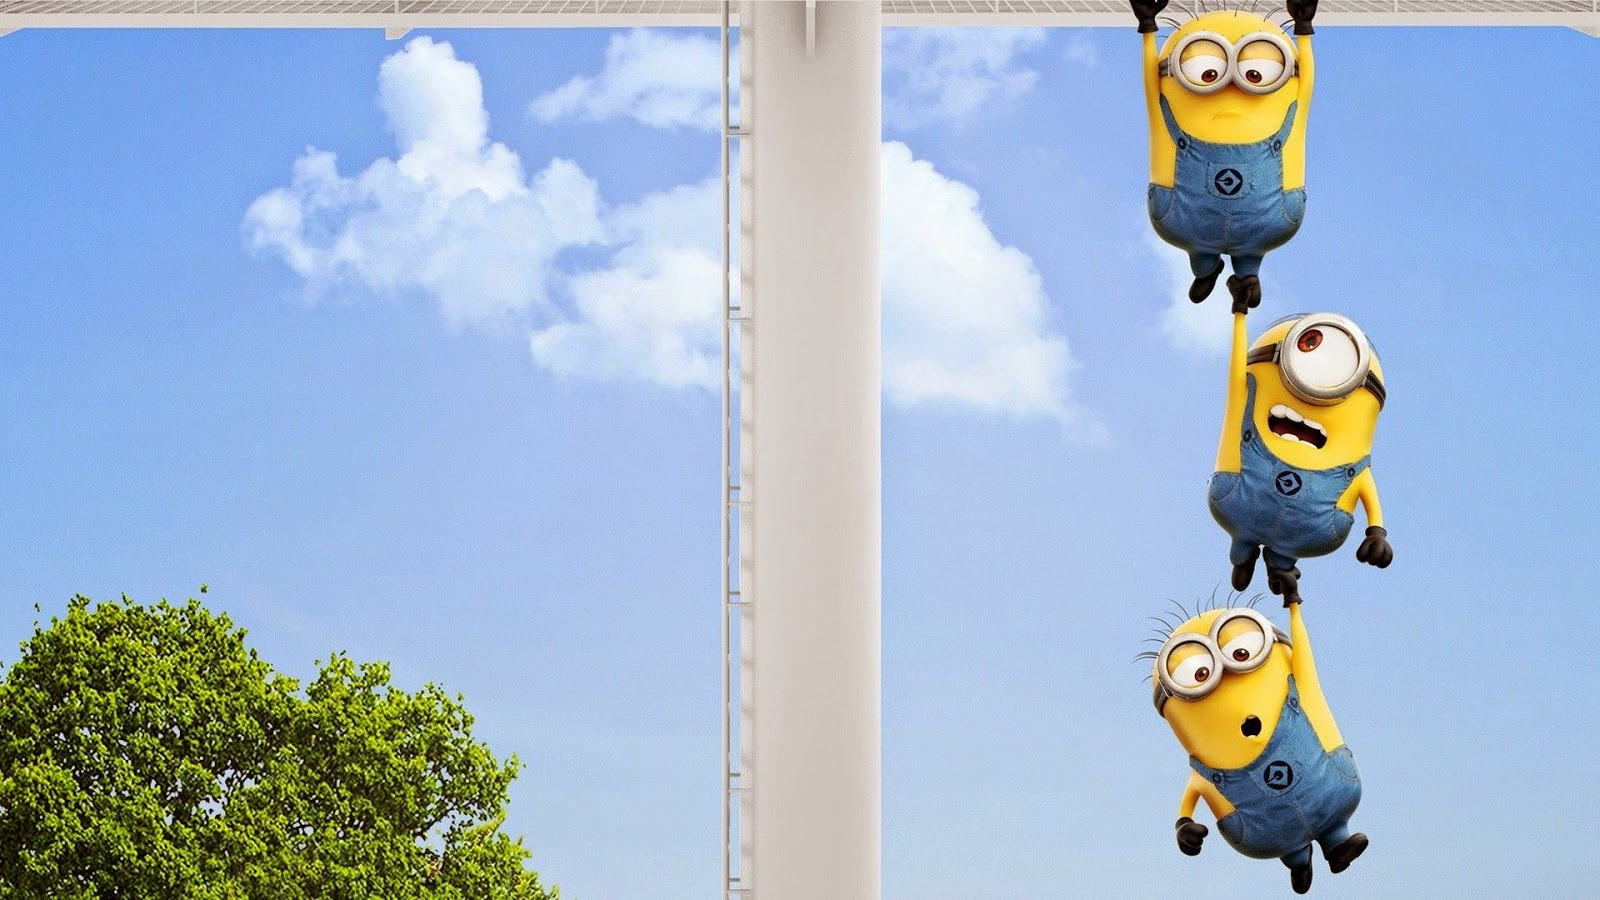 http://gallerycartoon.blogspot.com/2015/03/minions-movie-pictures-7.html